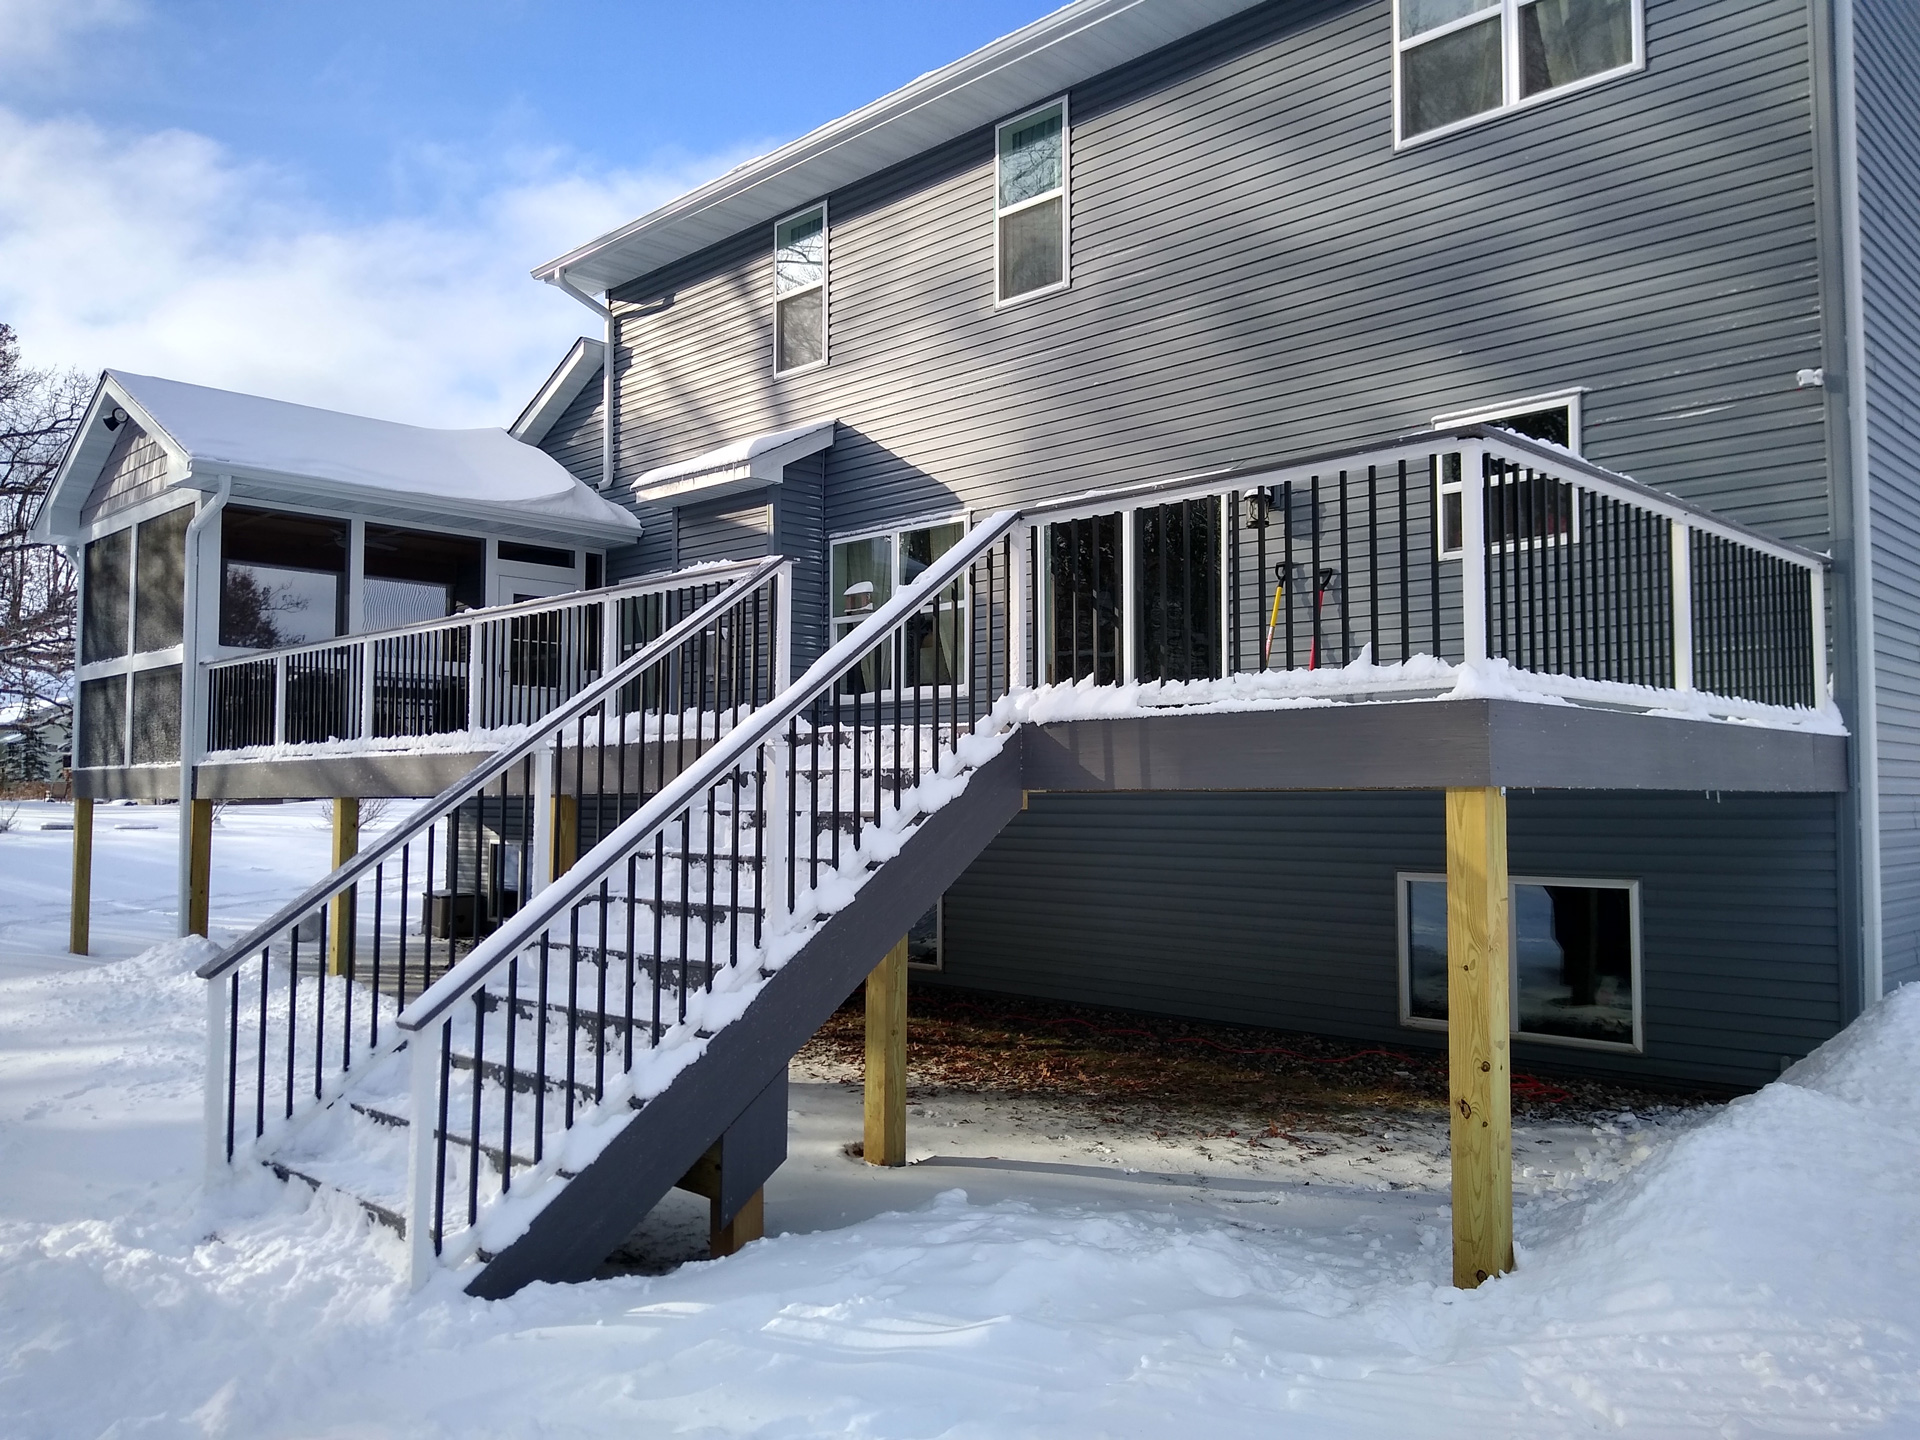 large deck with metal railing and gray house with snow on deck